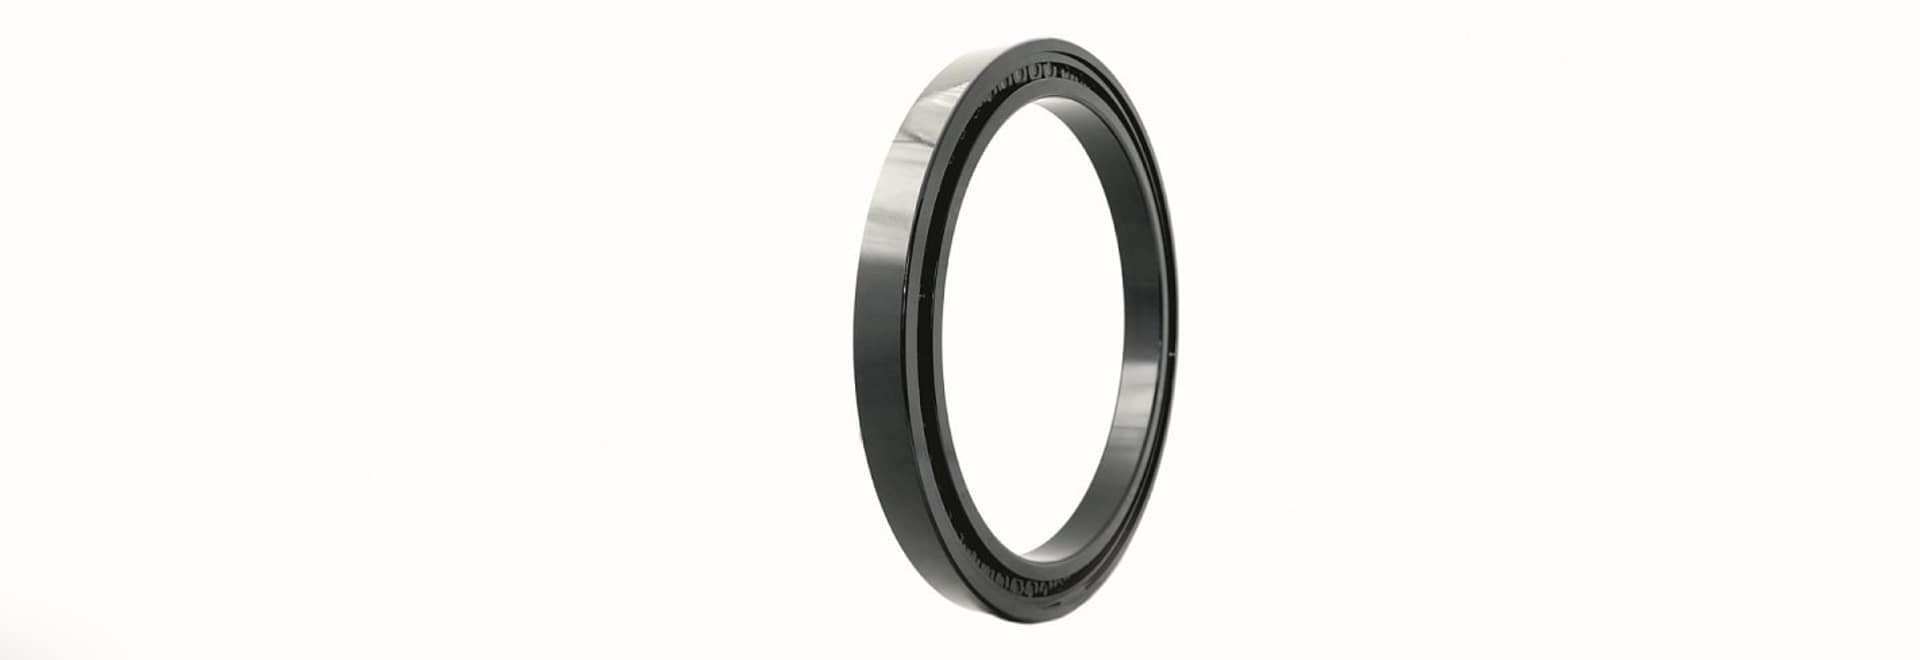 NKE will feature bearings with black oxide finish during Hannover Messe 2019 Hall 22, Stand D19.